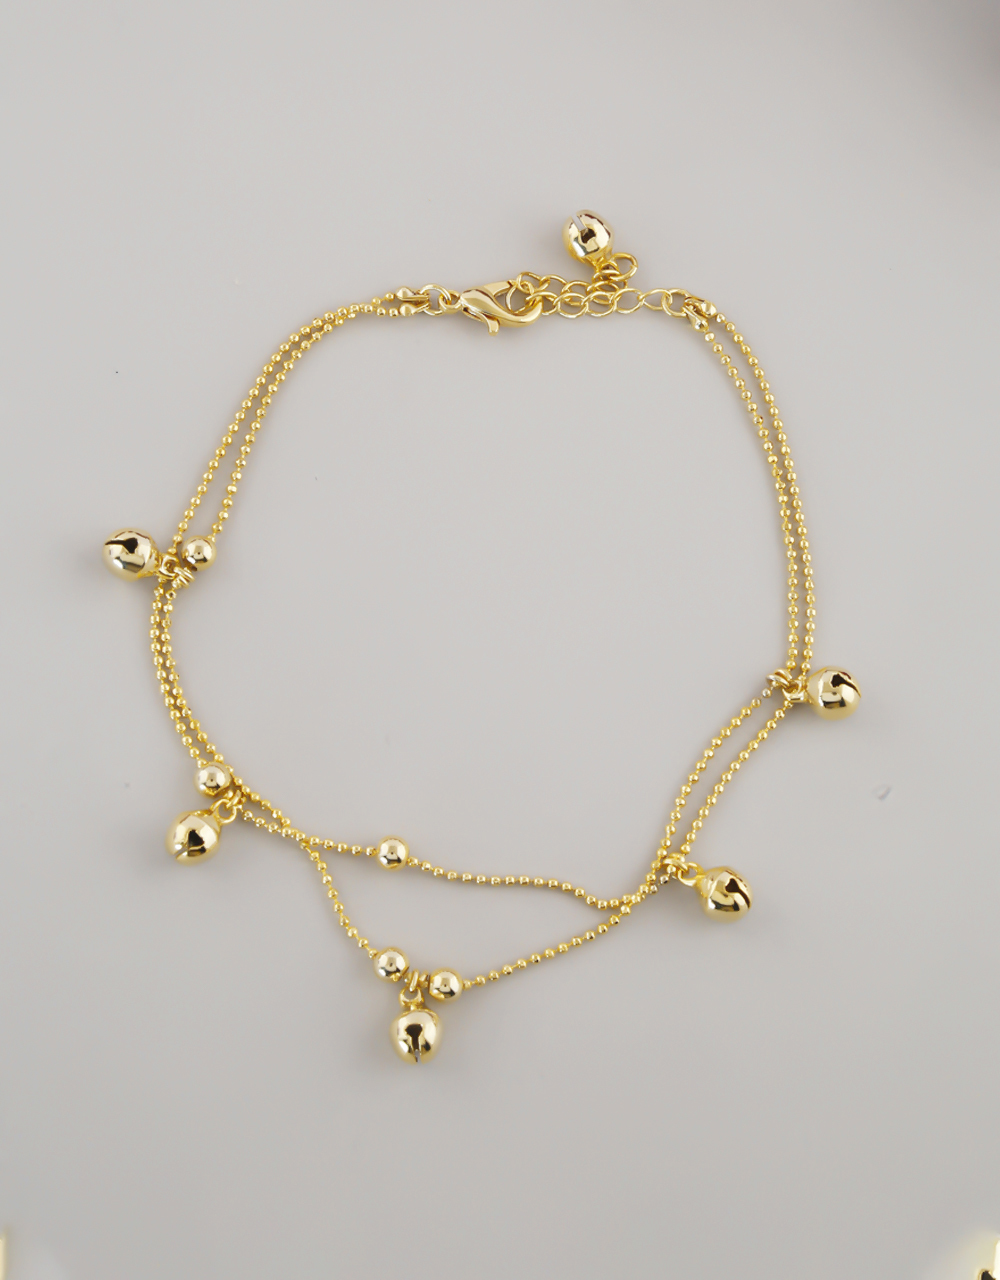 Gold Finish Ghungroo Styled Anklet For Girls